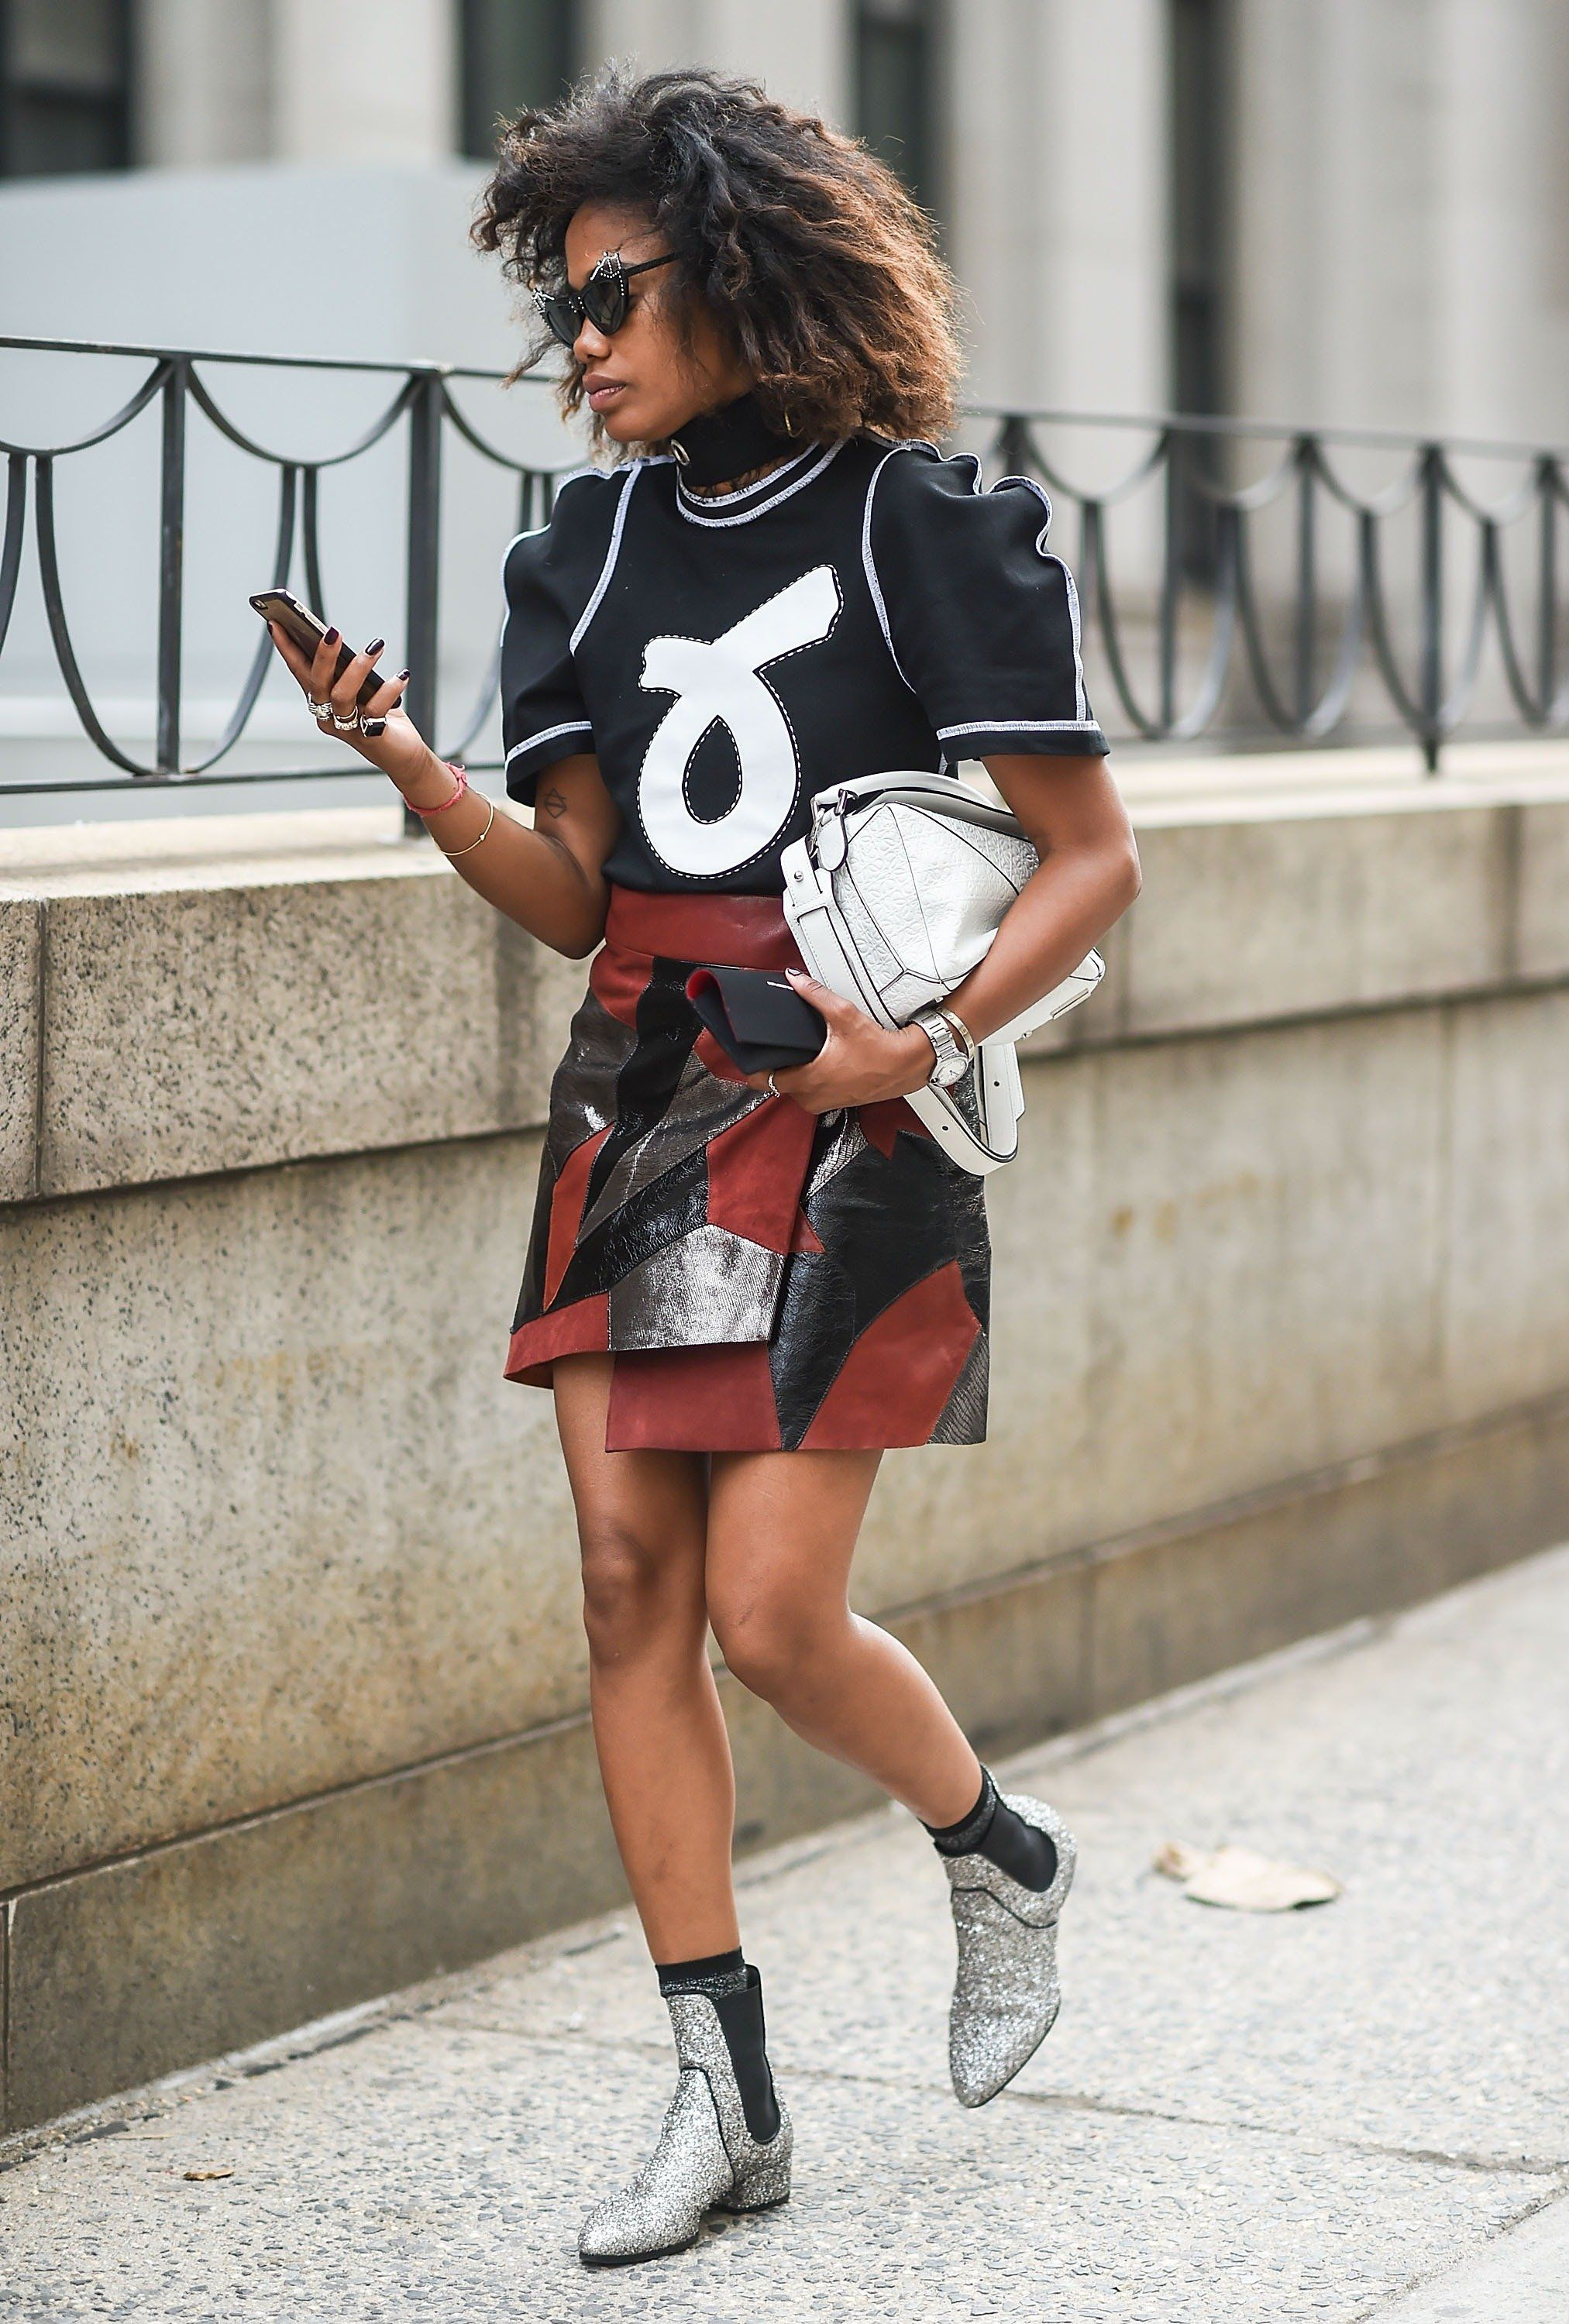 These Are the 100 Street Style Looks That Reigned Supreme in 2016